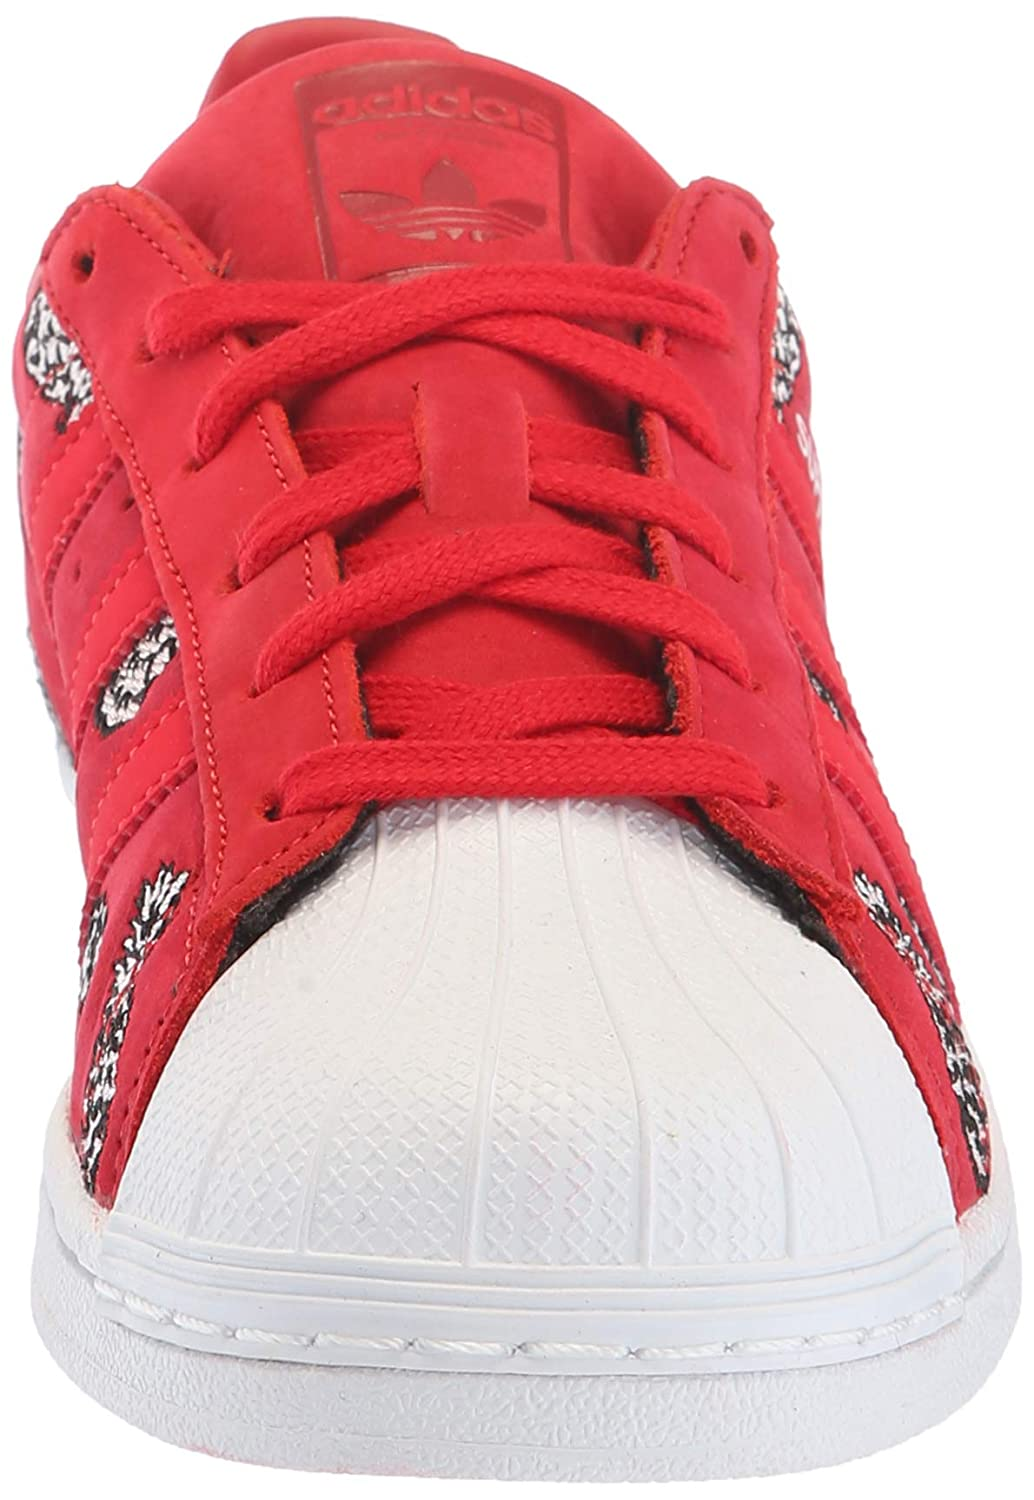 Adidas-Superstar-Women-039-s-Fashion-Casual-Sneakers-Athletic-Shoes-Originals thumbnail 3